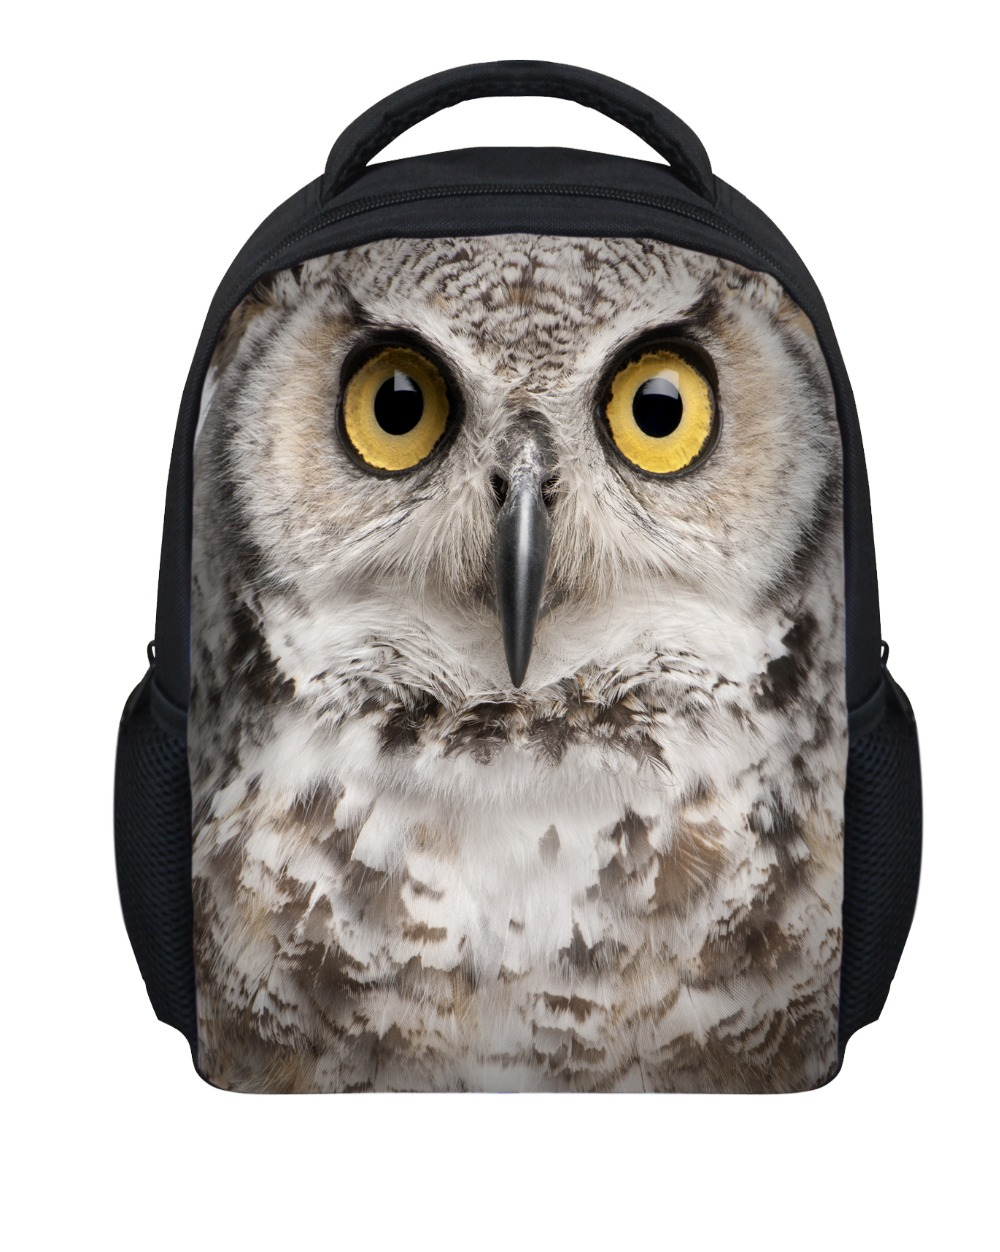 3396b0fc0650 Get Quotations · New Arrival Kids School Bags Animal Zoo Schoolbag for  Small Boys Girls Gifts Cute Owl Bag